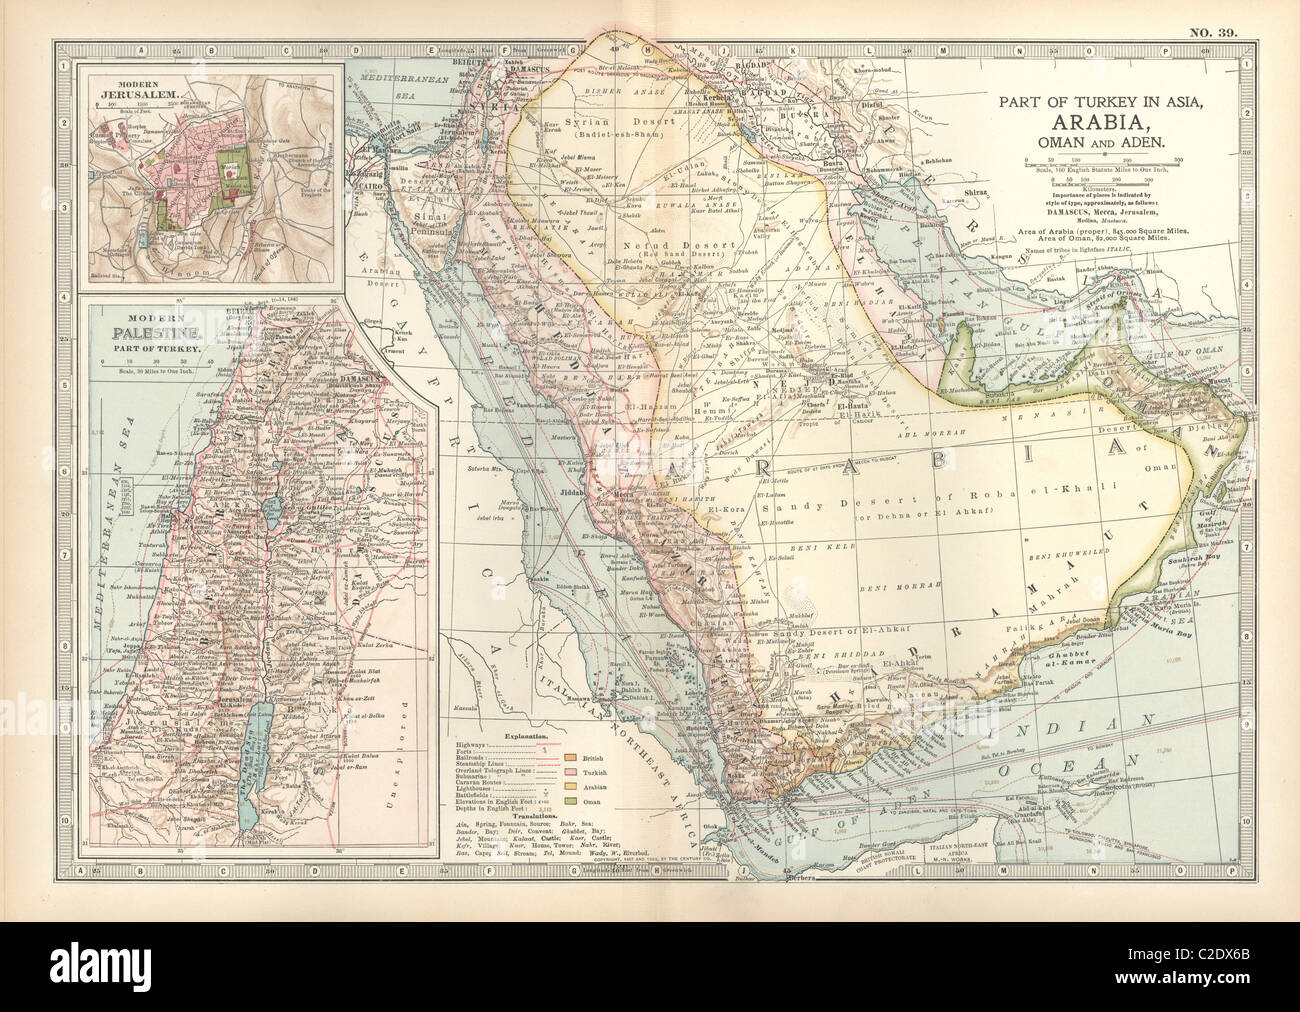 Map Of Arabia With Part Of Turkey And Oman Photo Royalty – Map of Arabia